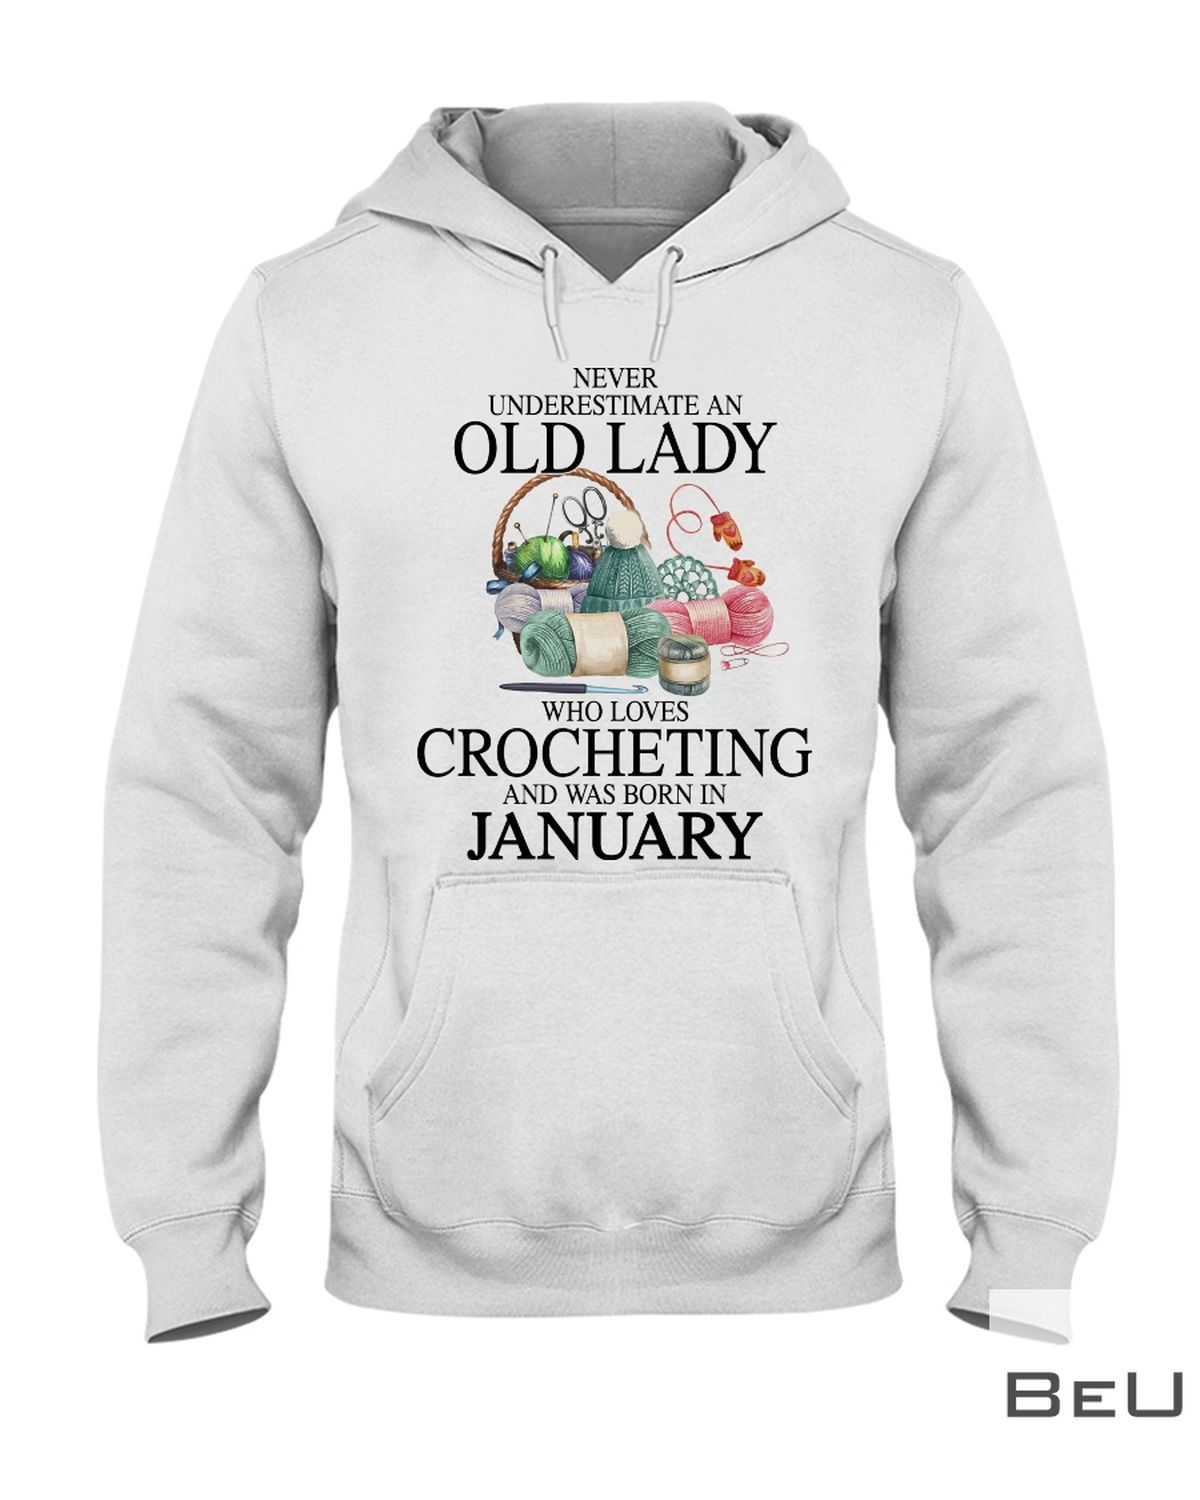 Never underestimate an old lady who loves Crocheting and was born in January shirtz